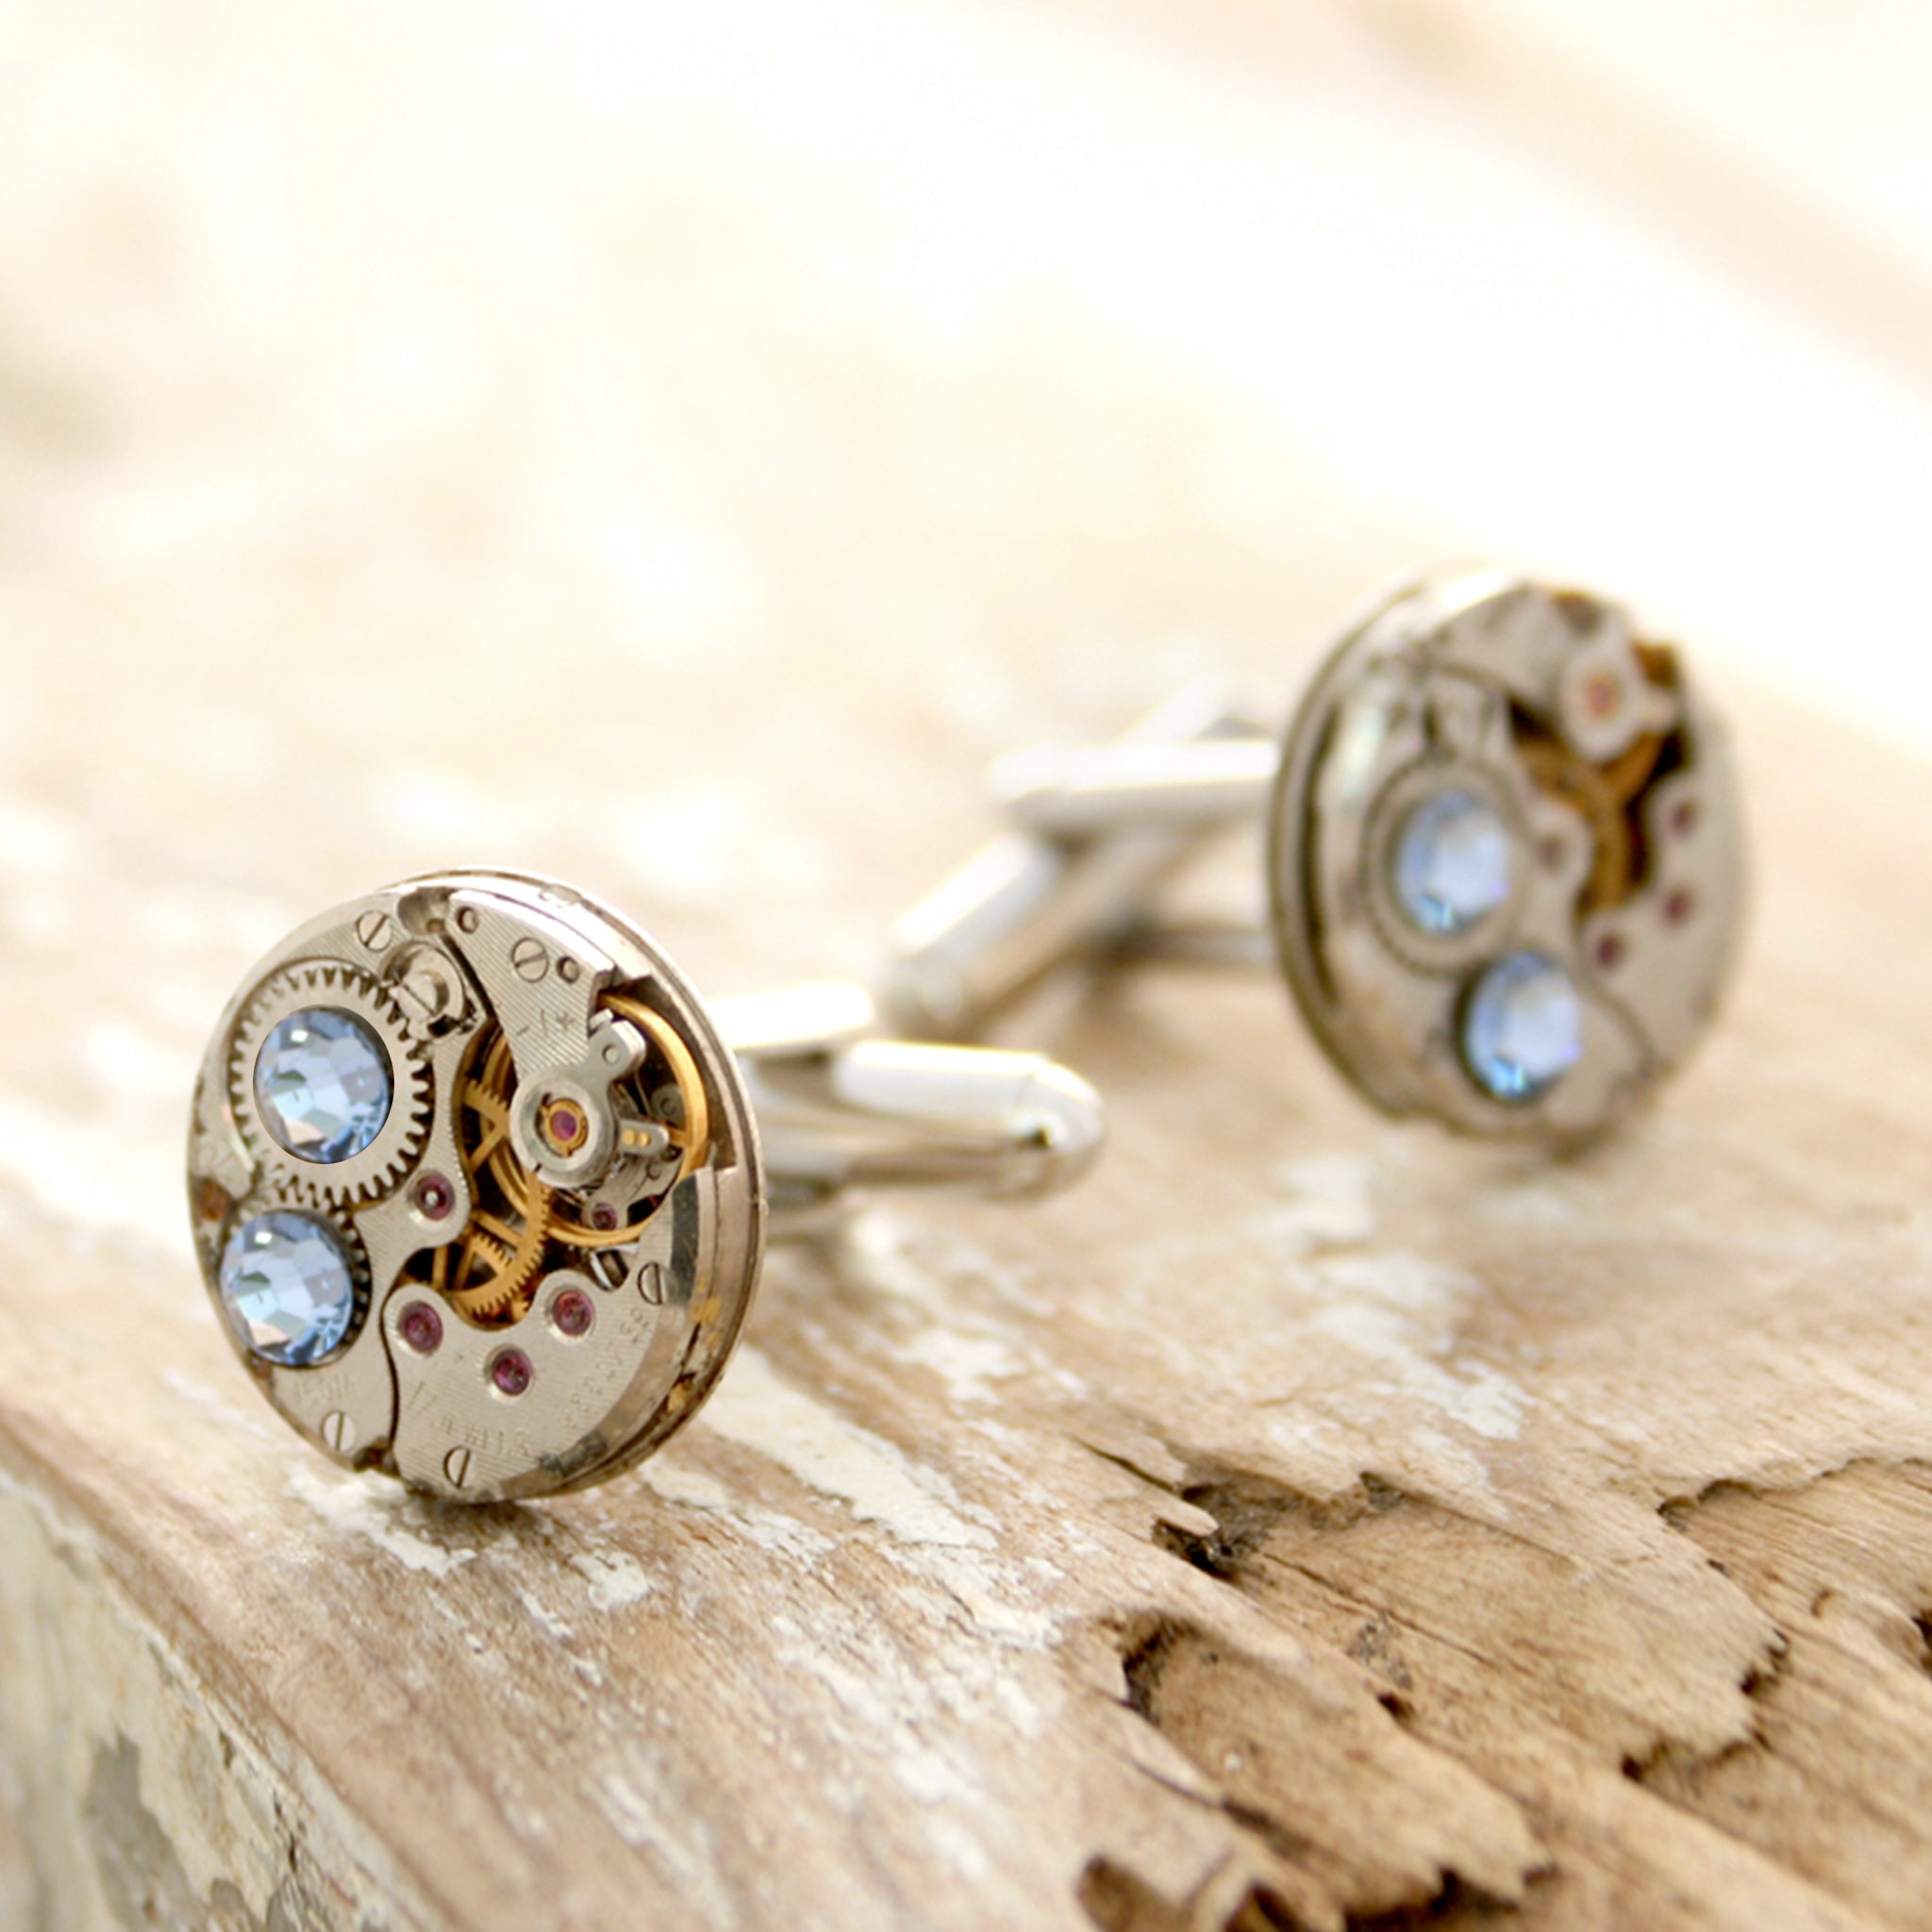 birthstone cufflinks in steampunk style featuring antique watch movements and Sapphire crystals